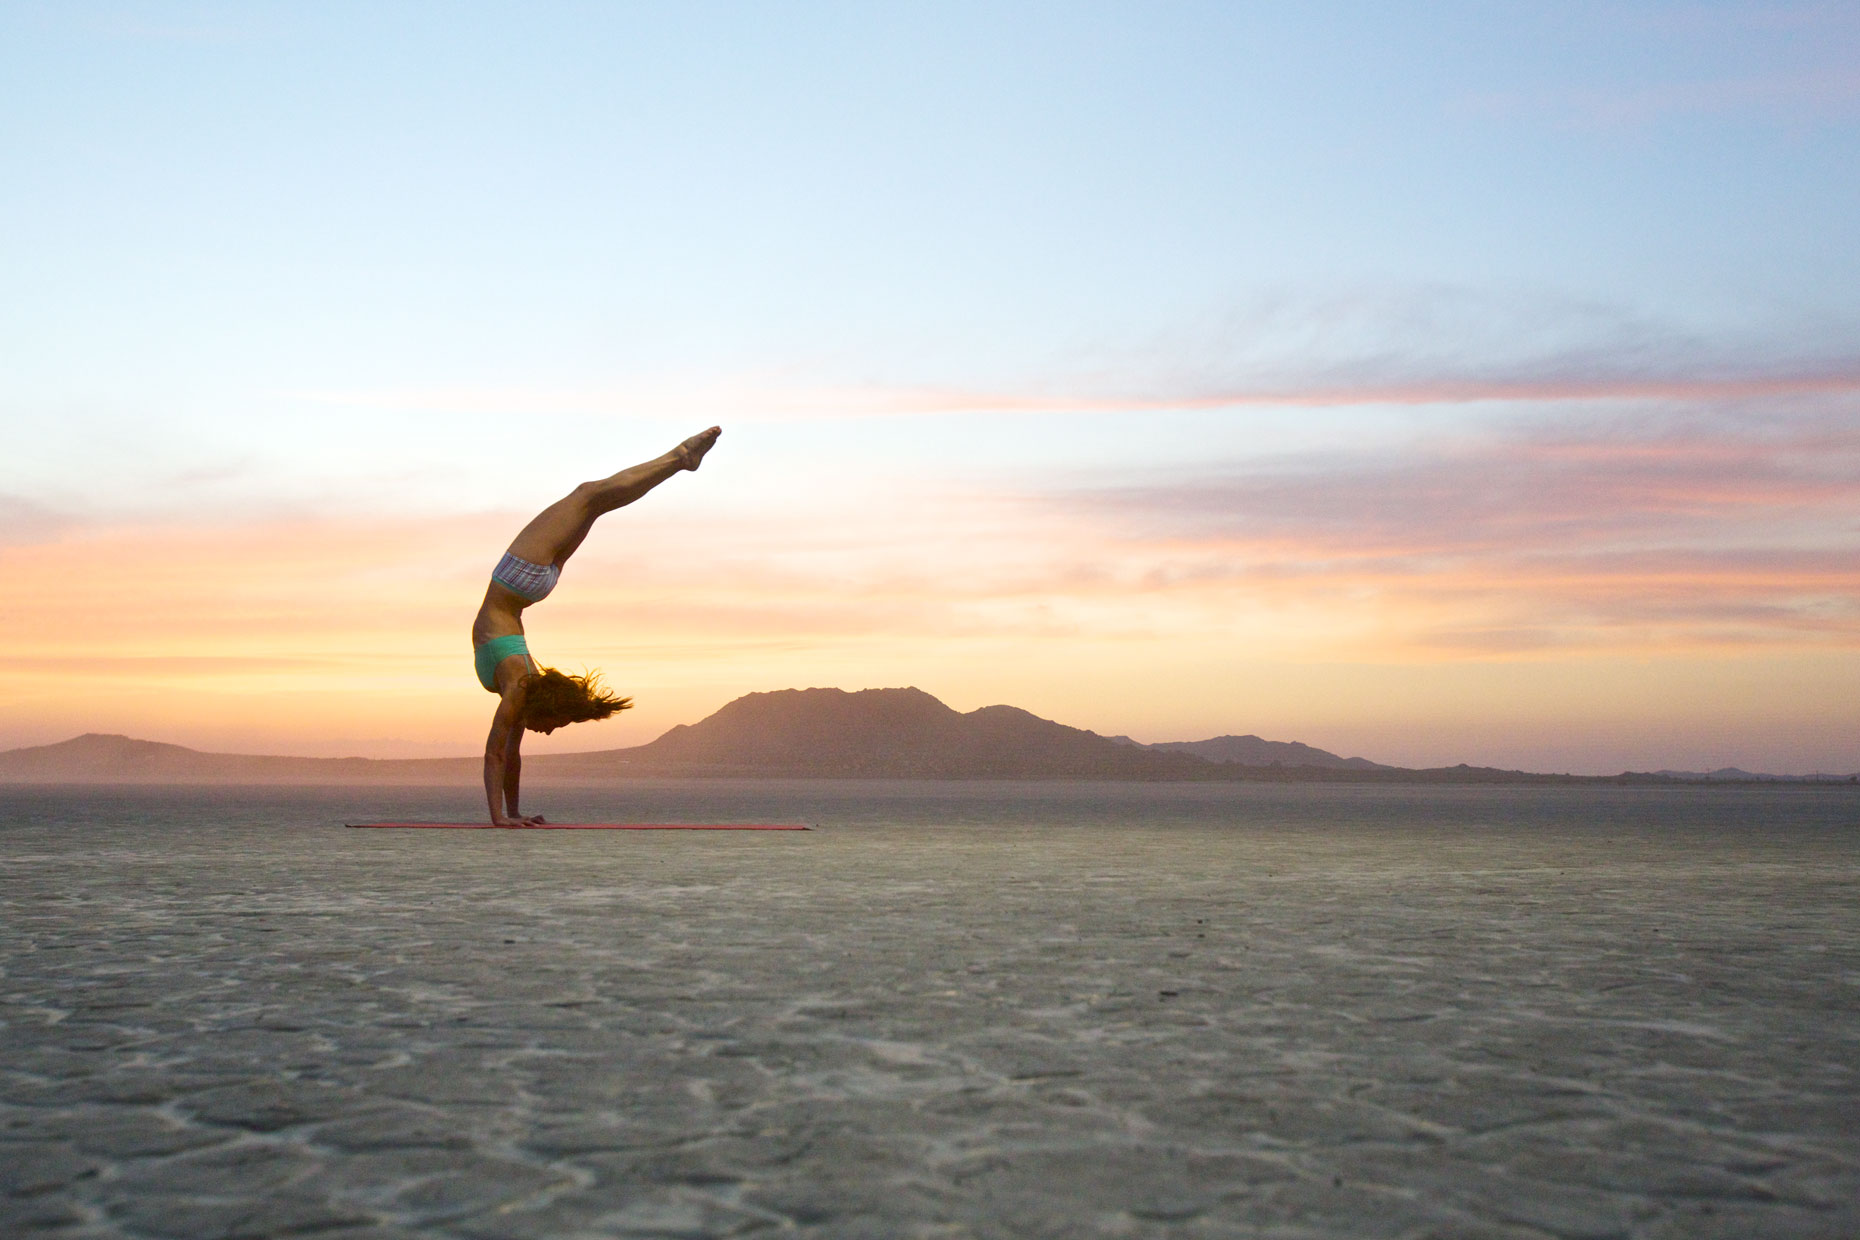 Handstand in the desert at Sunset/Steve Mason Photography